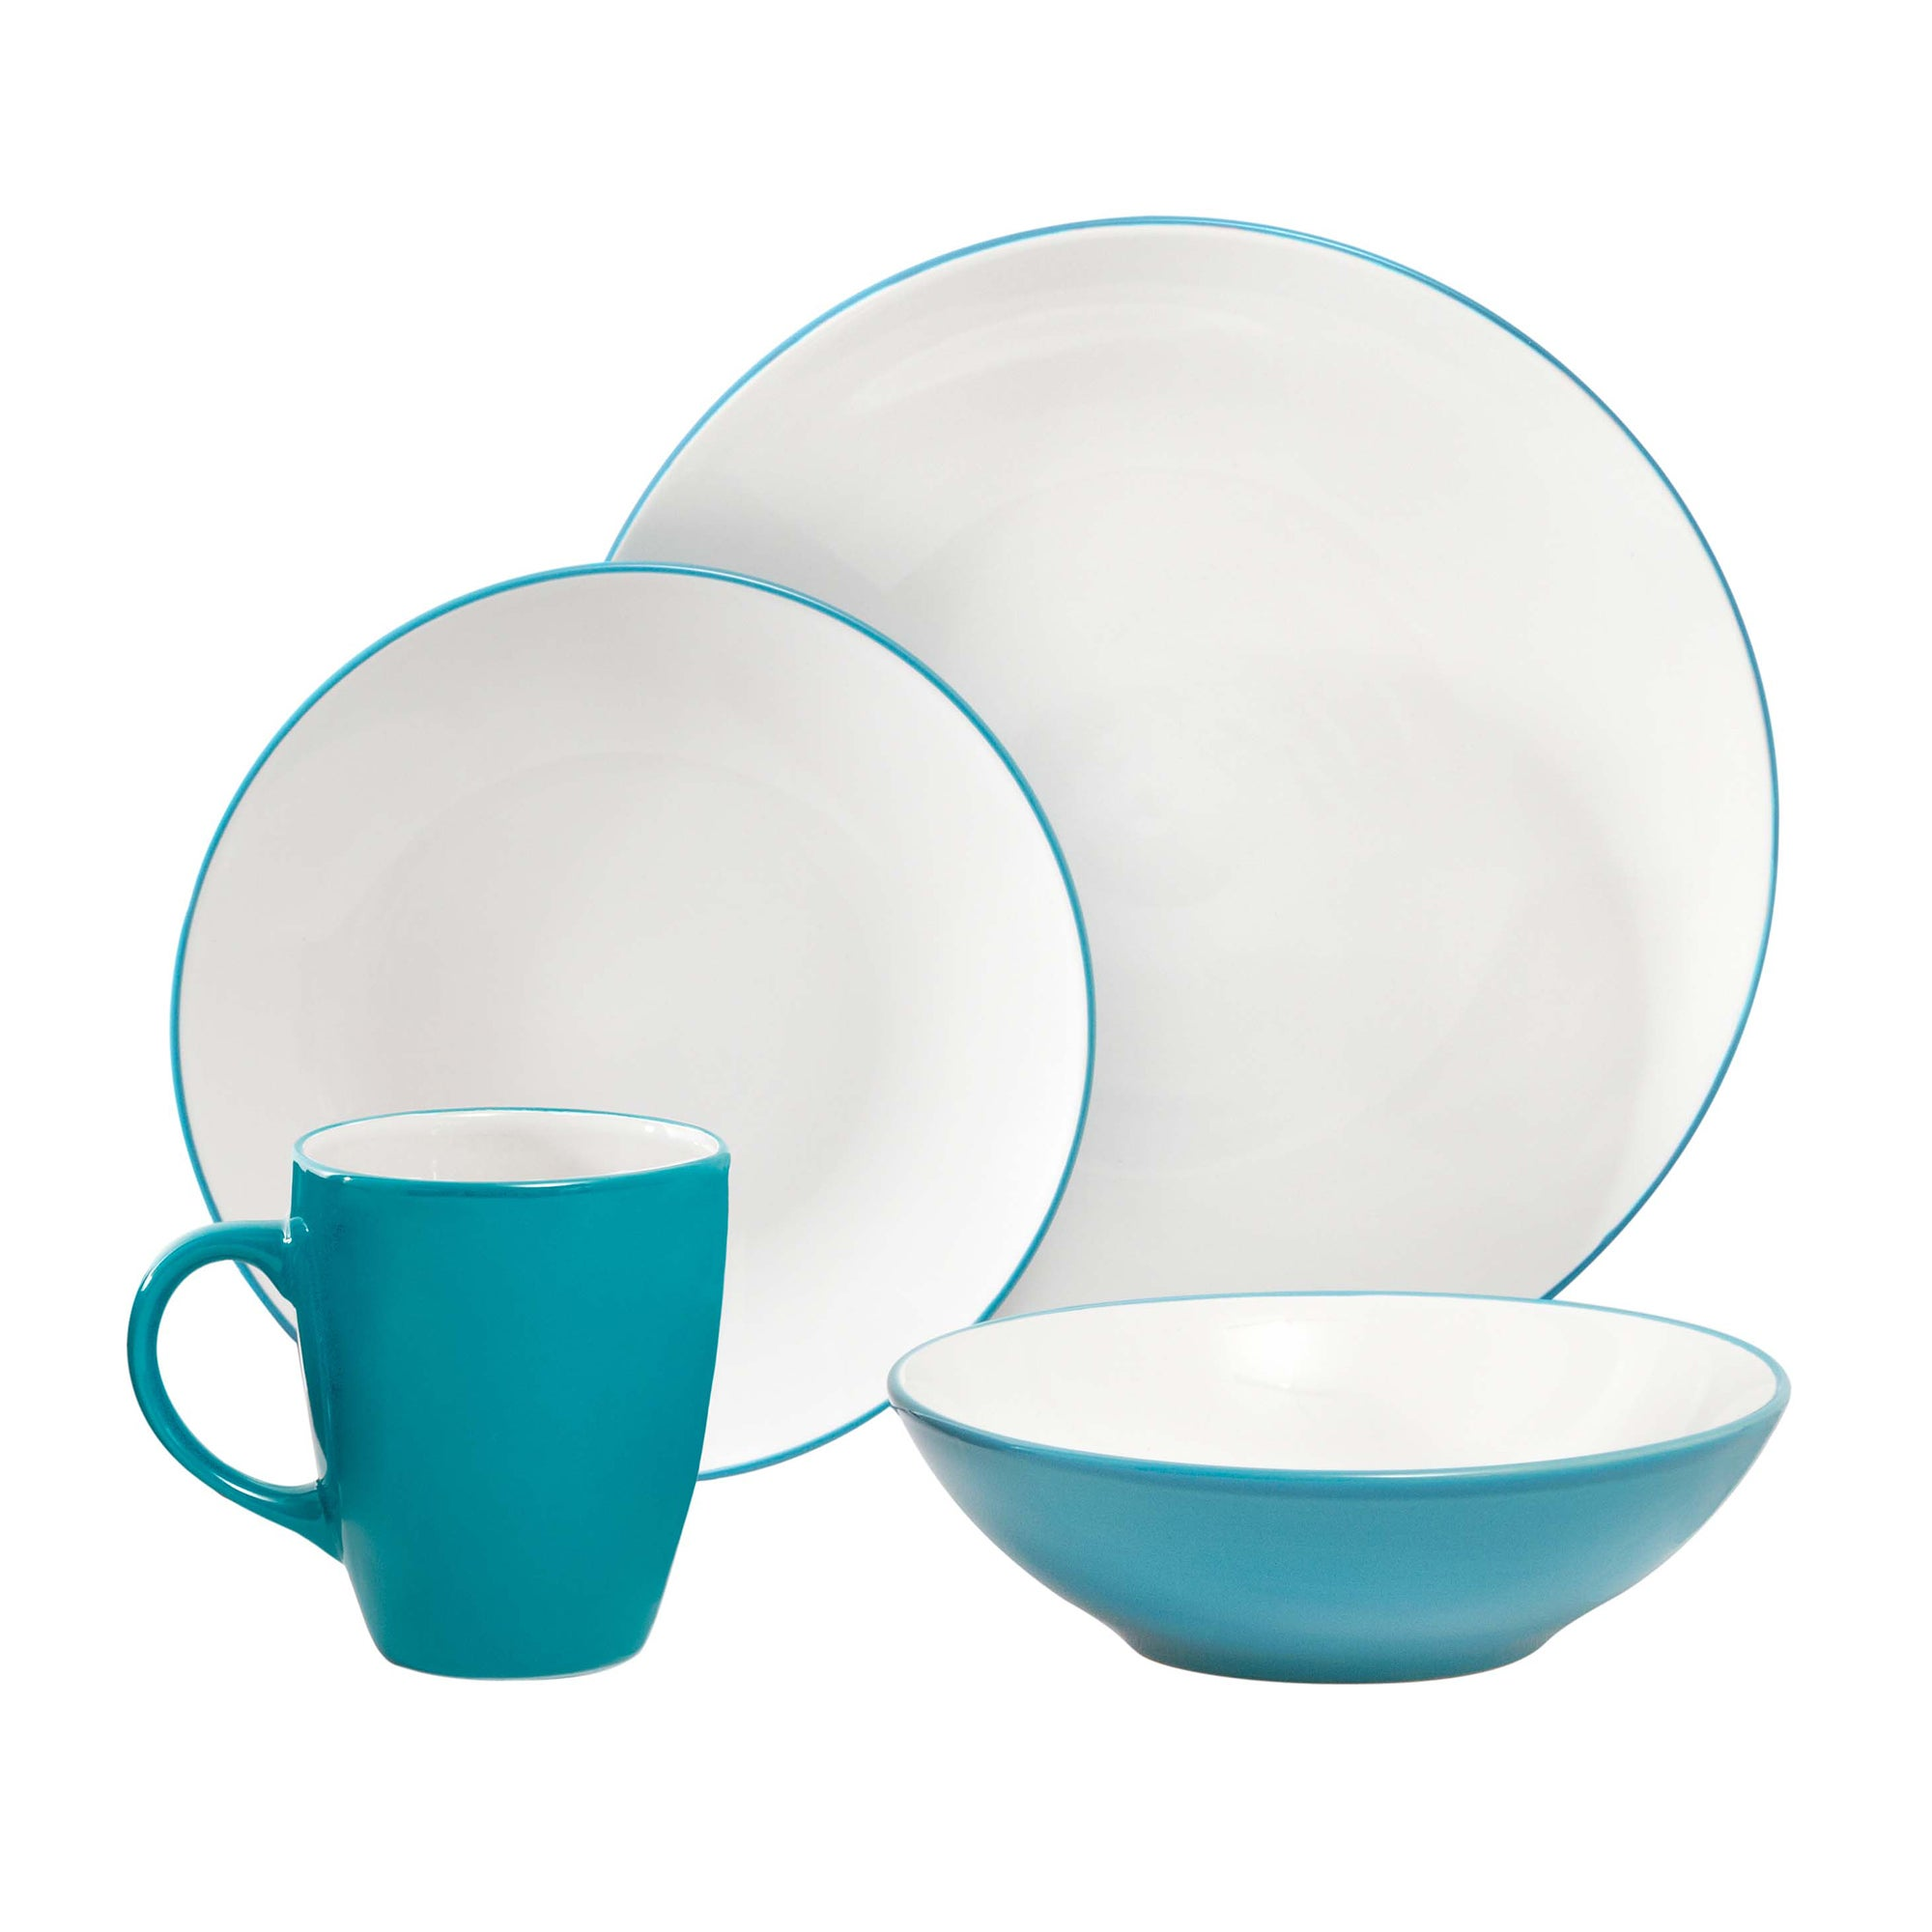 Image of Spectrum 16 Piece Turquoise Dinner Set Turquoise (Blue)